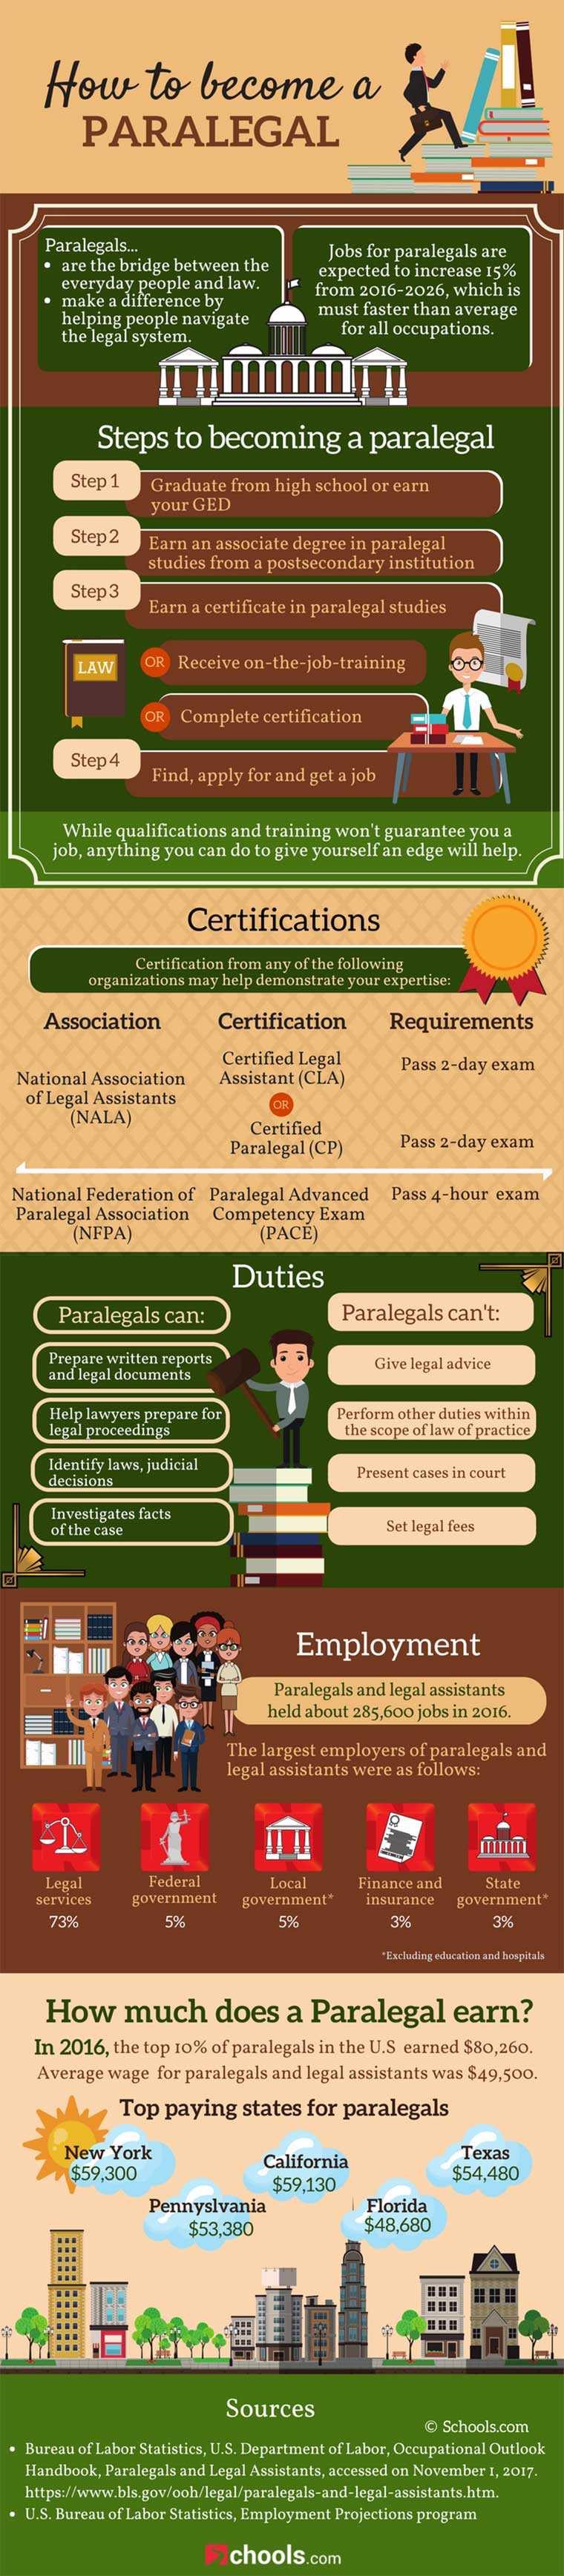 Become a Paralegal: The Way Forward - Infographic